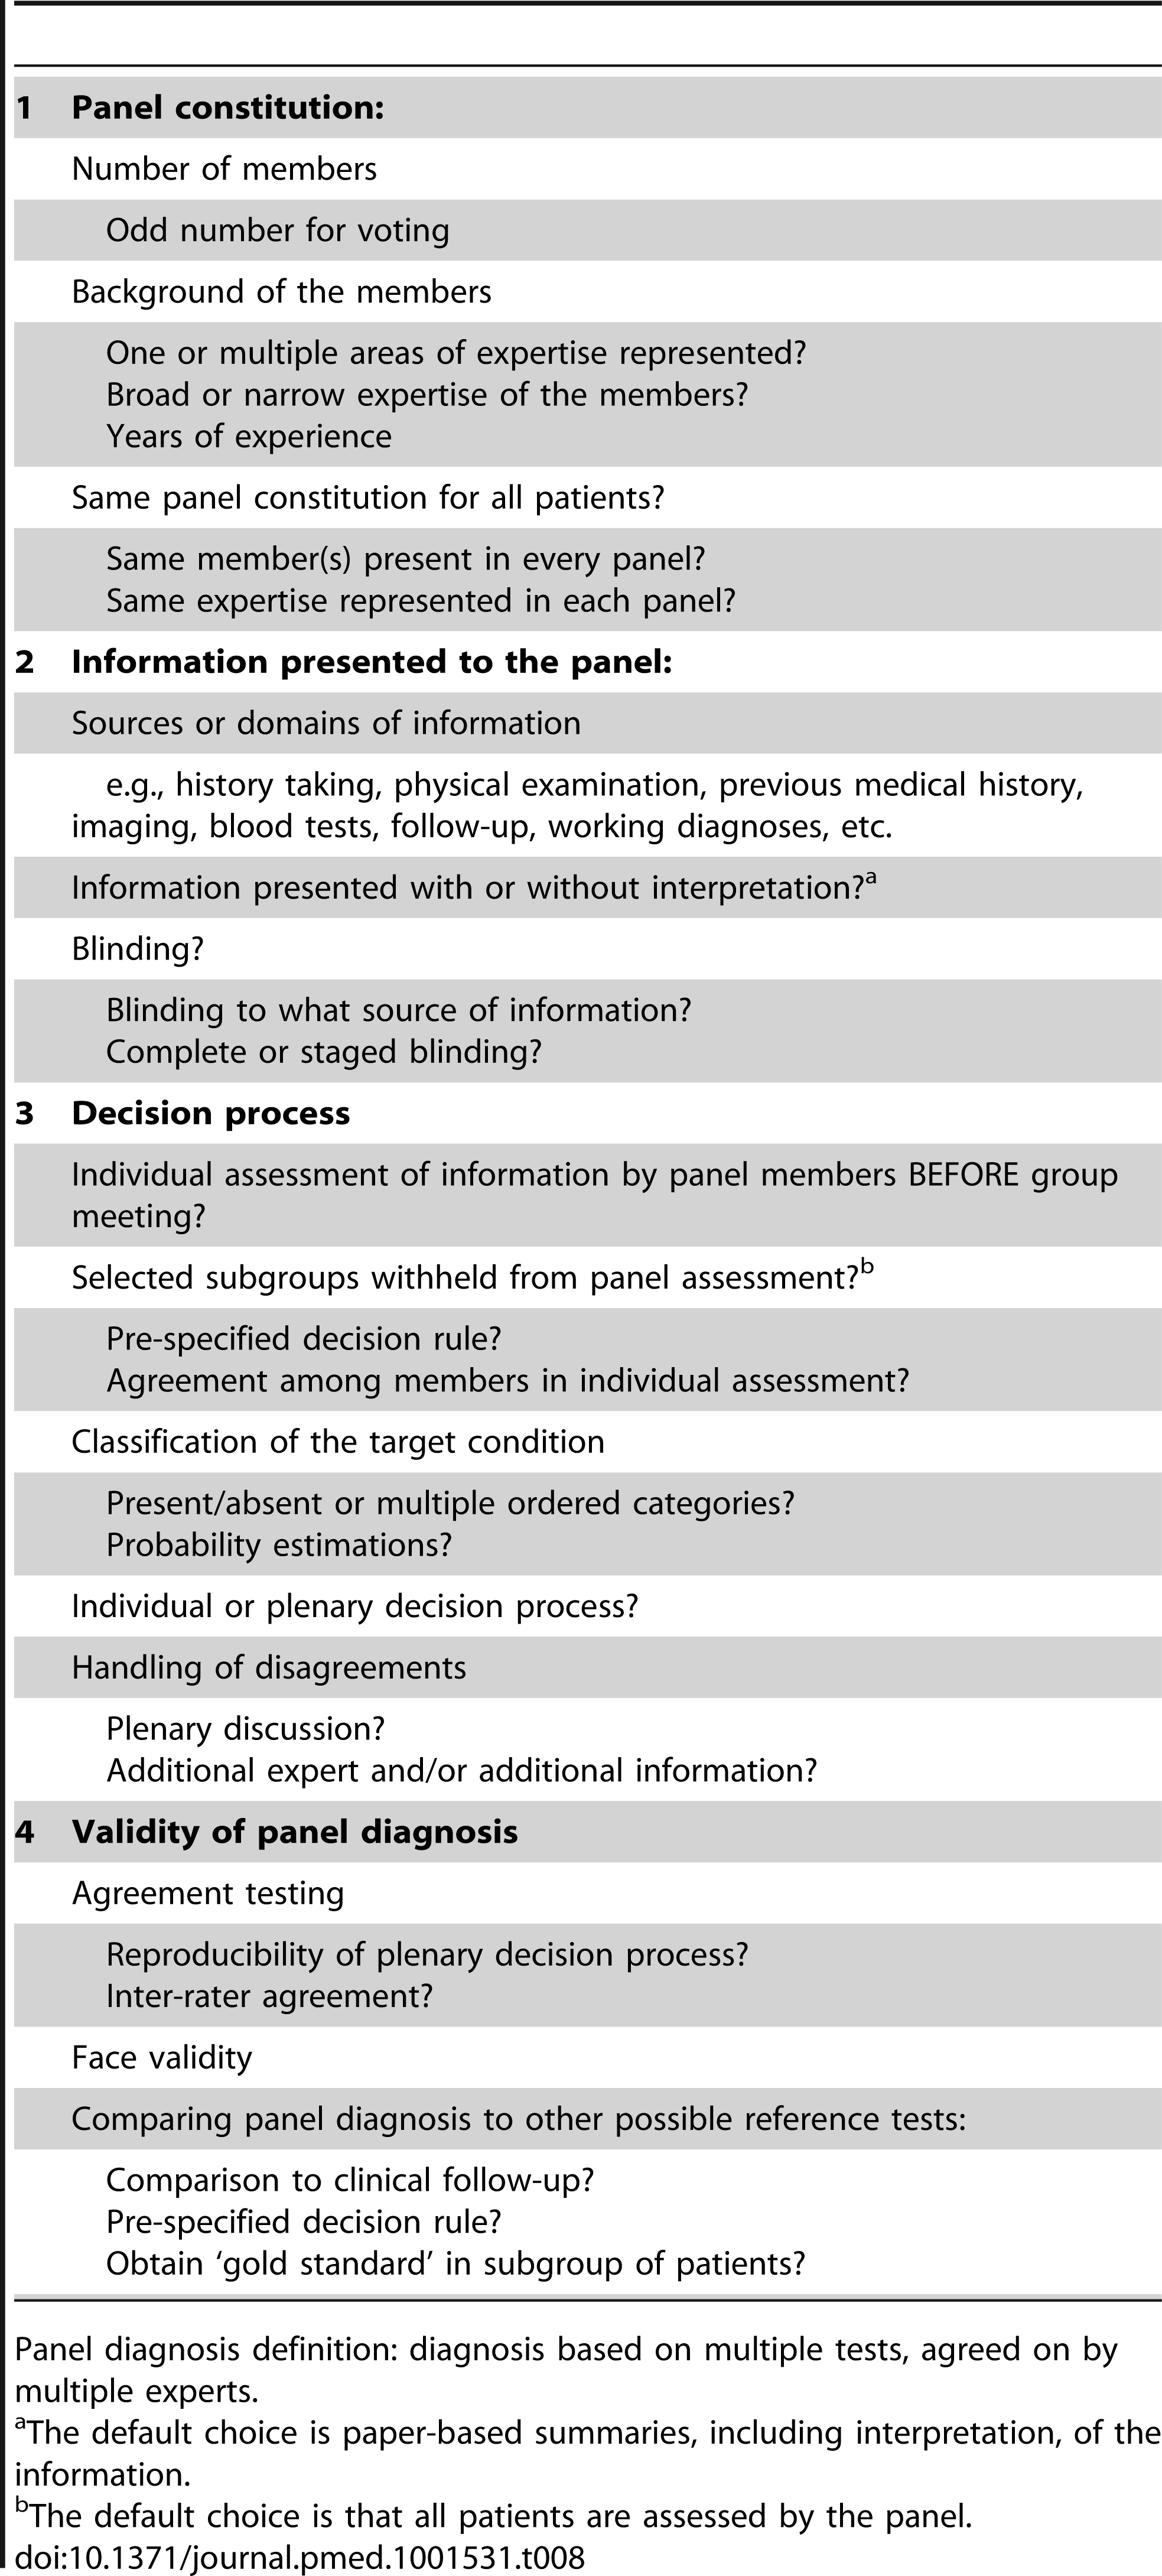 Options to consider when reporting or designing a study using a panel diagnosis as reference standard.